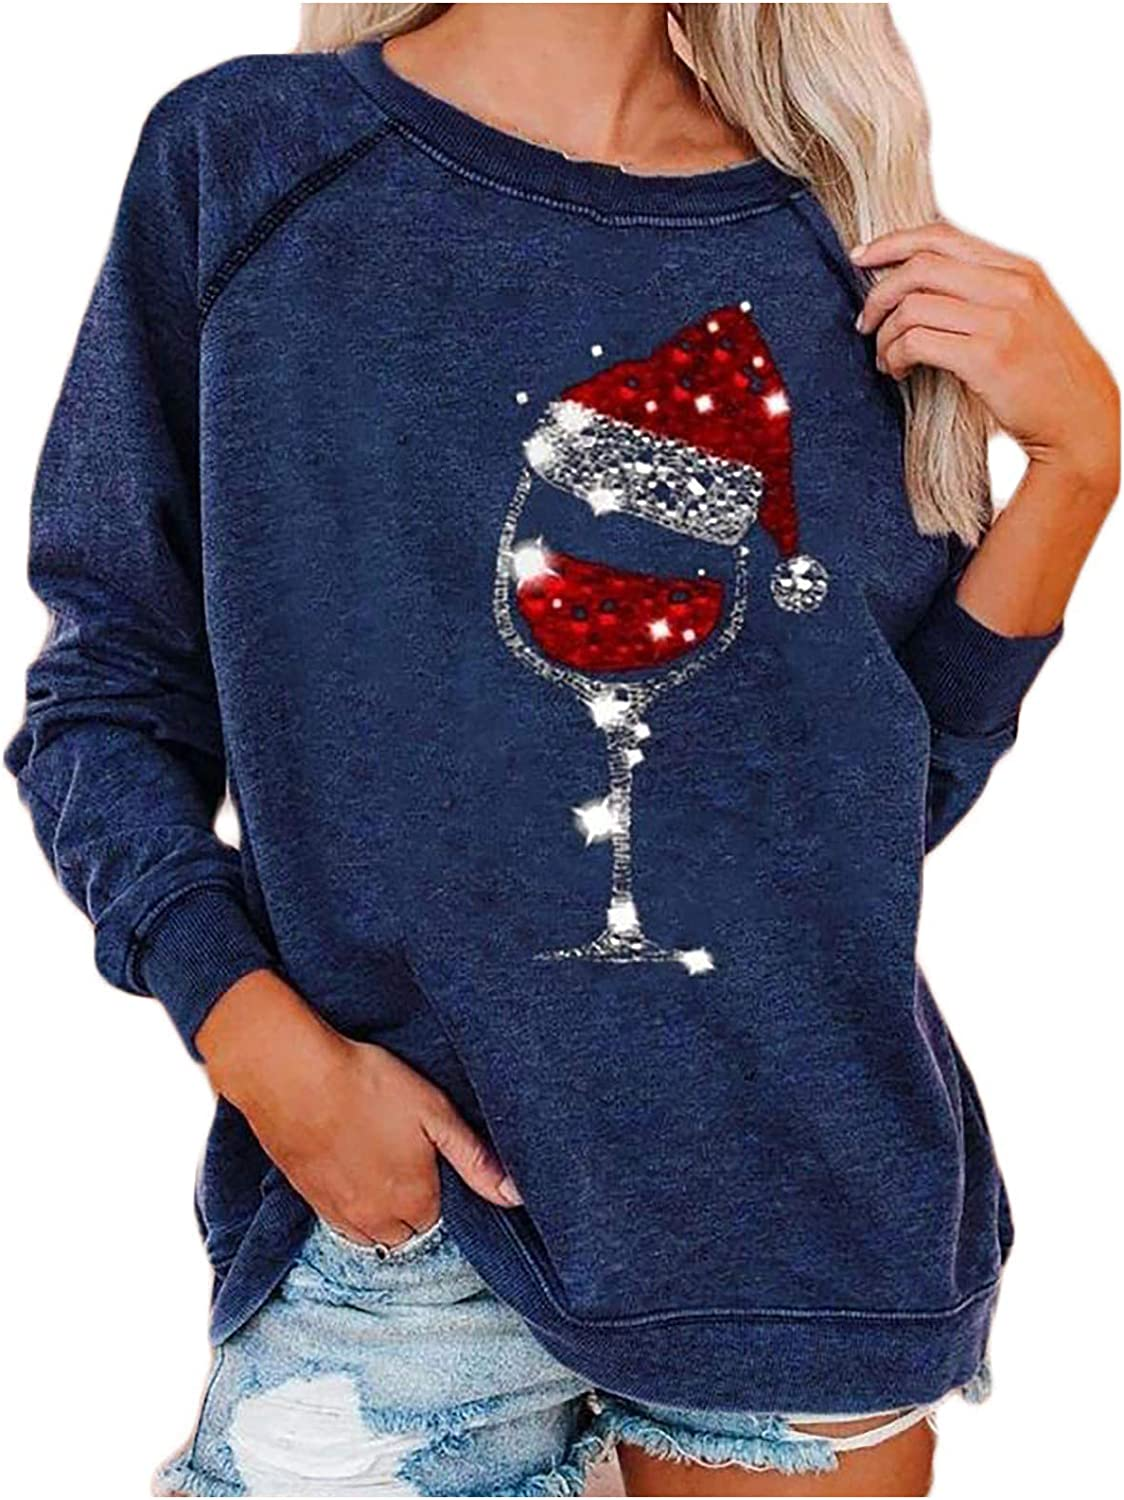 Women's Slouchy Sweatshirt Christmas Red Wine Glass Print Pullover Tops Fall Winter Long Sleeve Round Neck Shirt Blouse